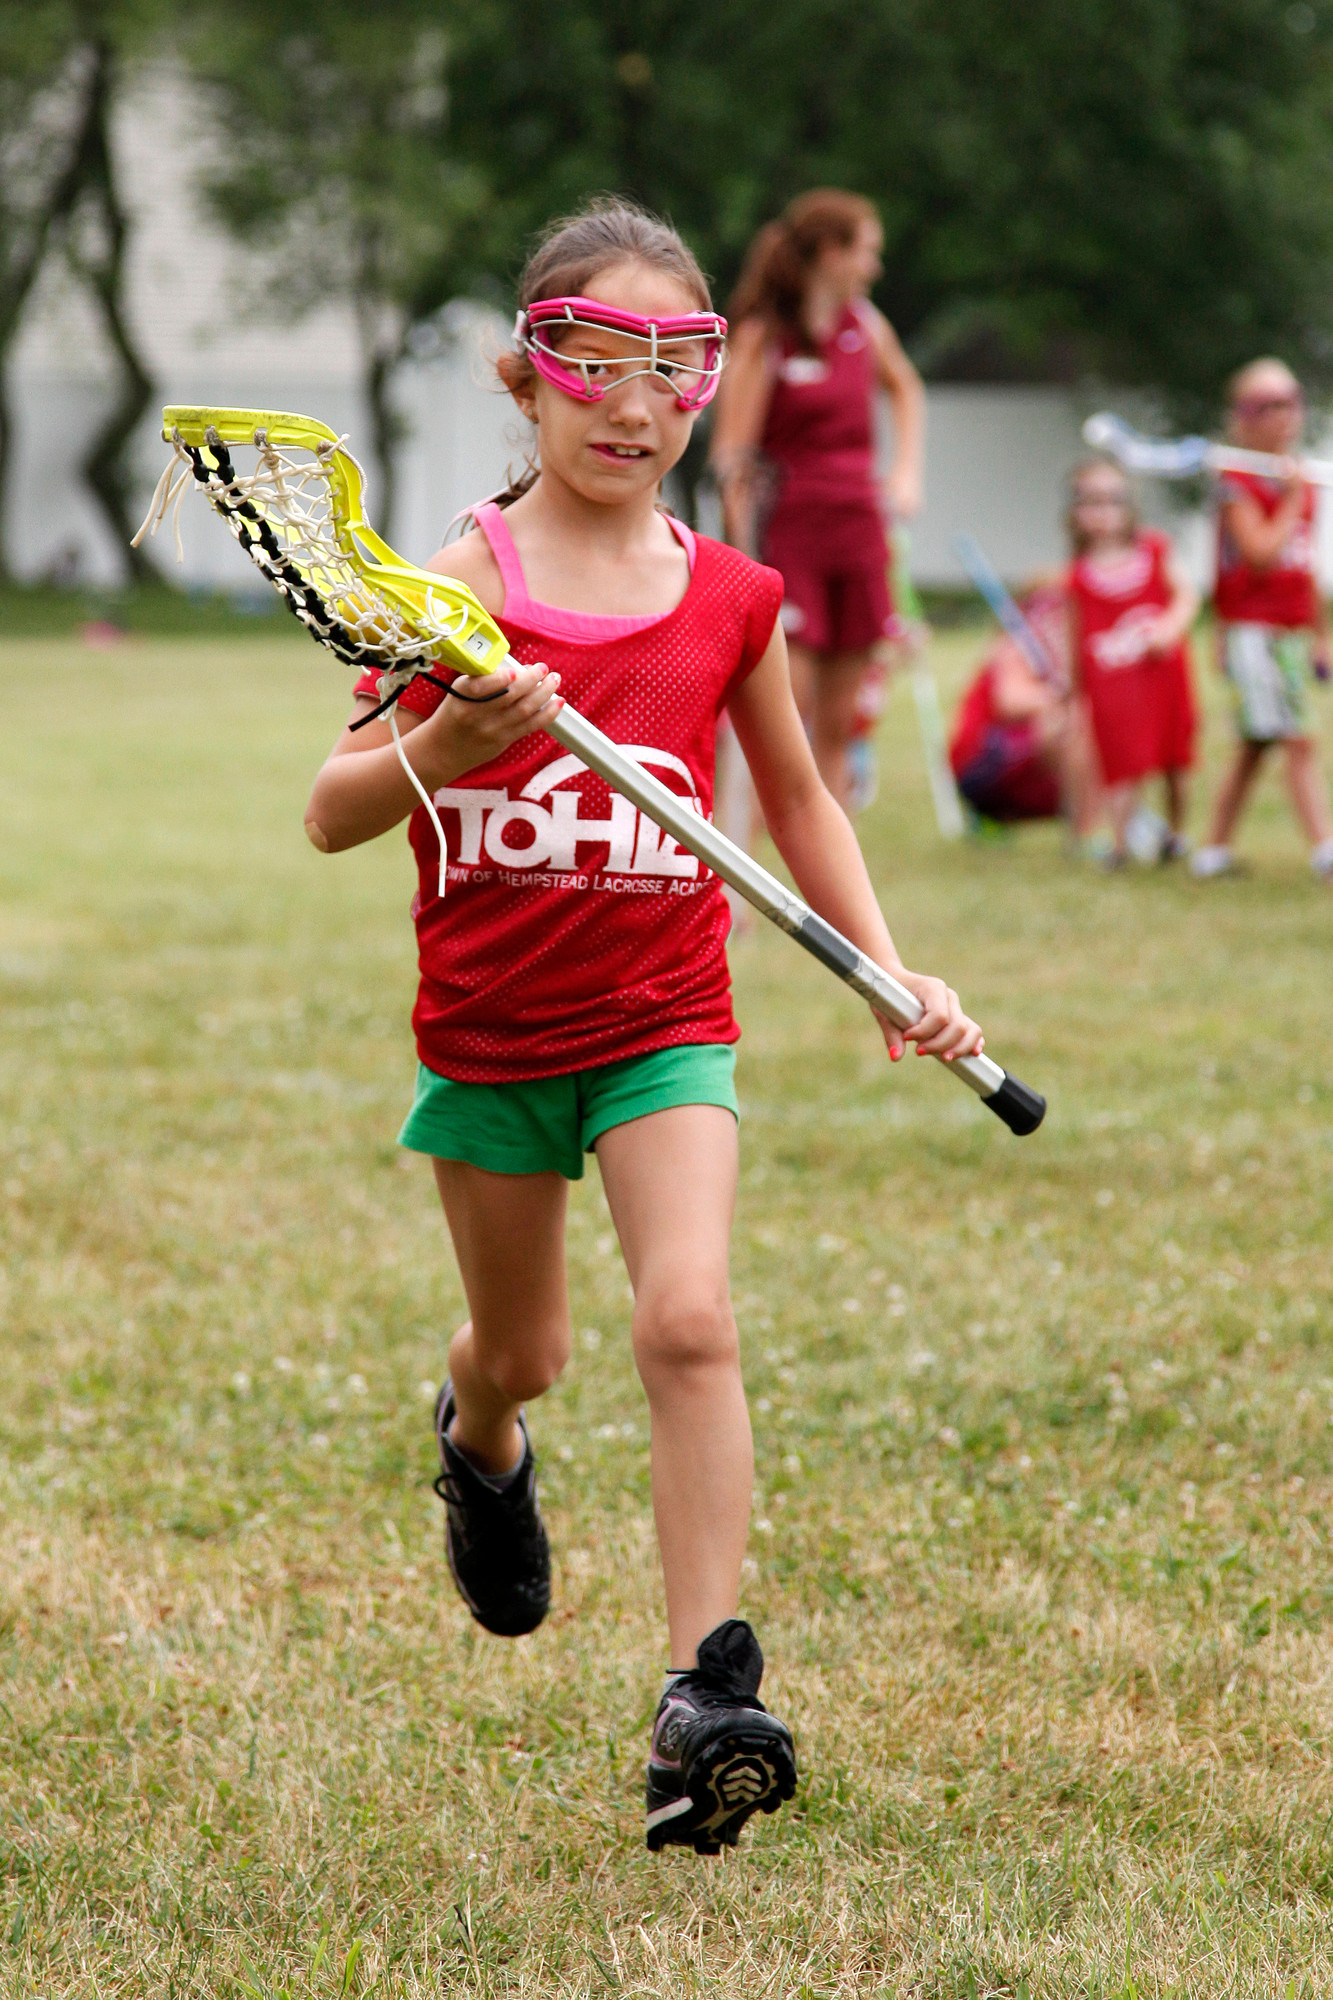 Leanna Kwarta, 7, of Lindenhurst, was one of the many young athletes who participated in the clinic.